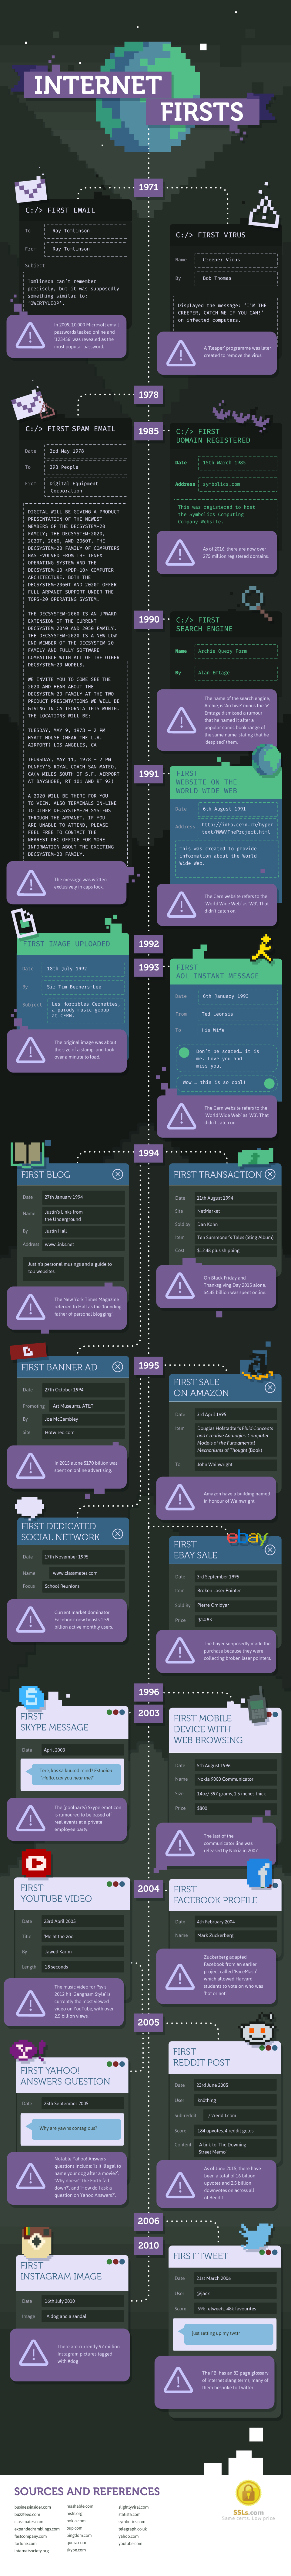 Internet Firsts [INFOGRAPHIC]